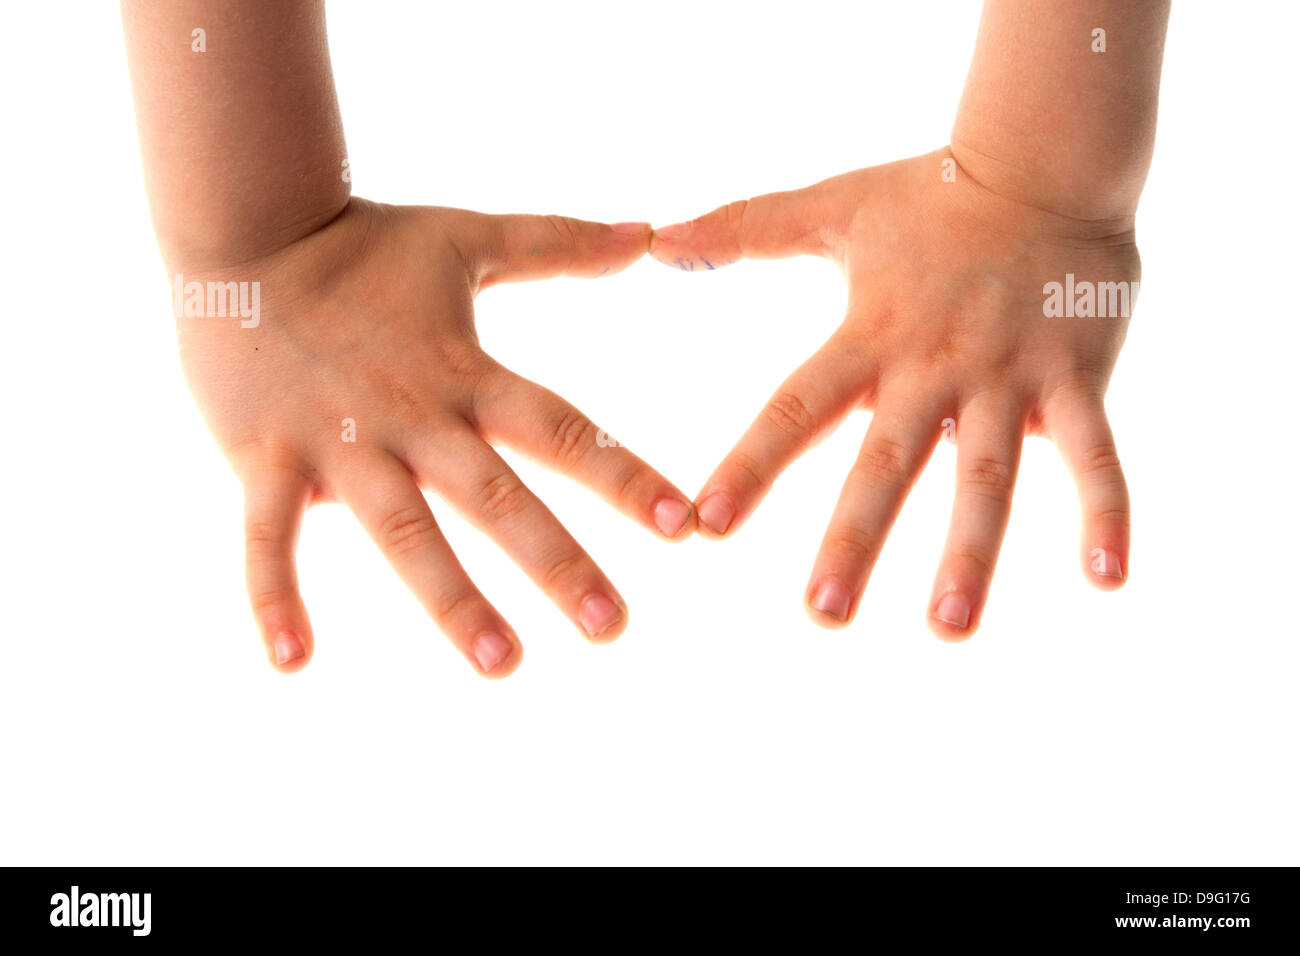 Four year old boy's hands - Stock Image